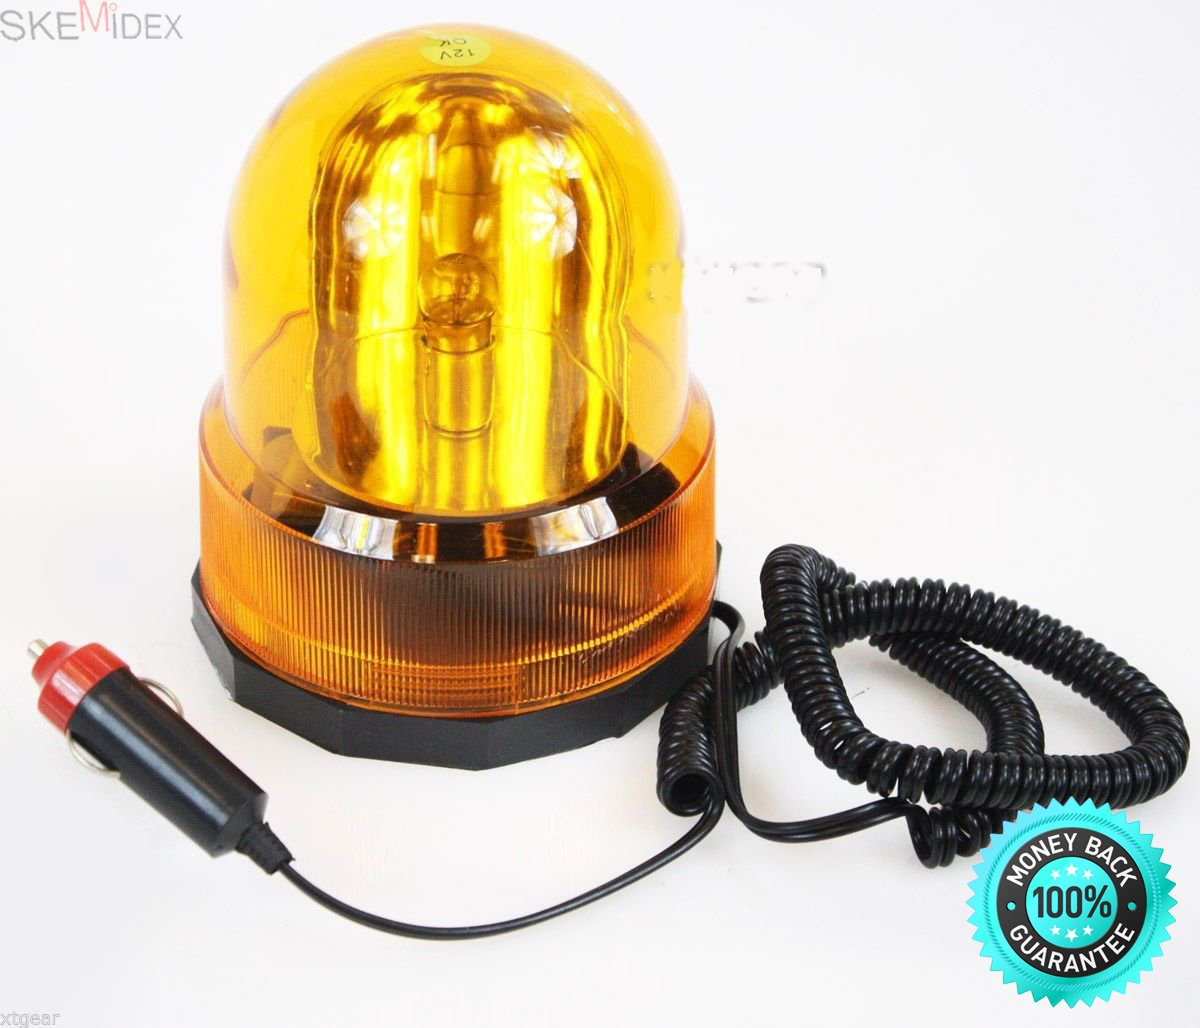 SKEMiDEX---Revolving Emergency Light Strobe Snow Plow Tow Truck Deck Flash Amber Warning Nw. This is a great emergency light ideal for use on vehicles where the use of a permanent light